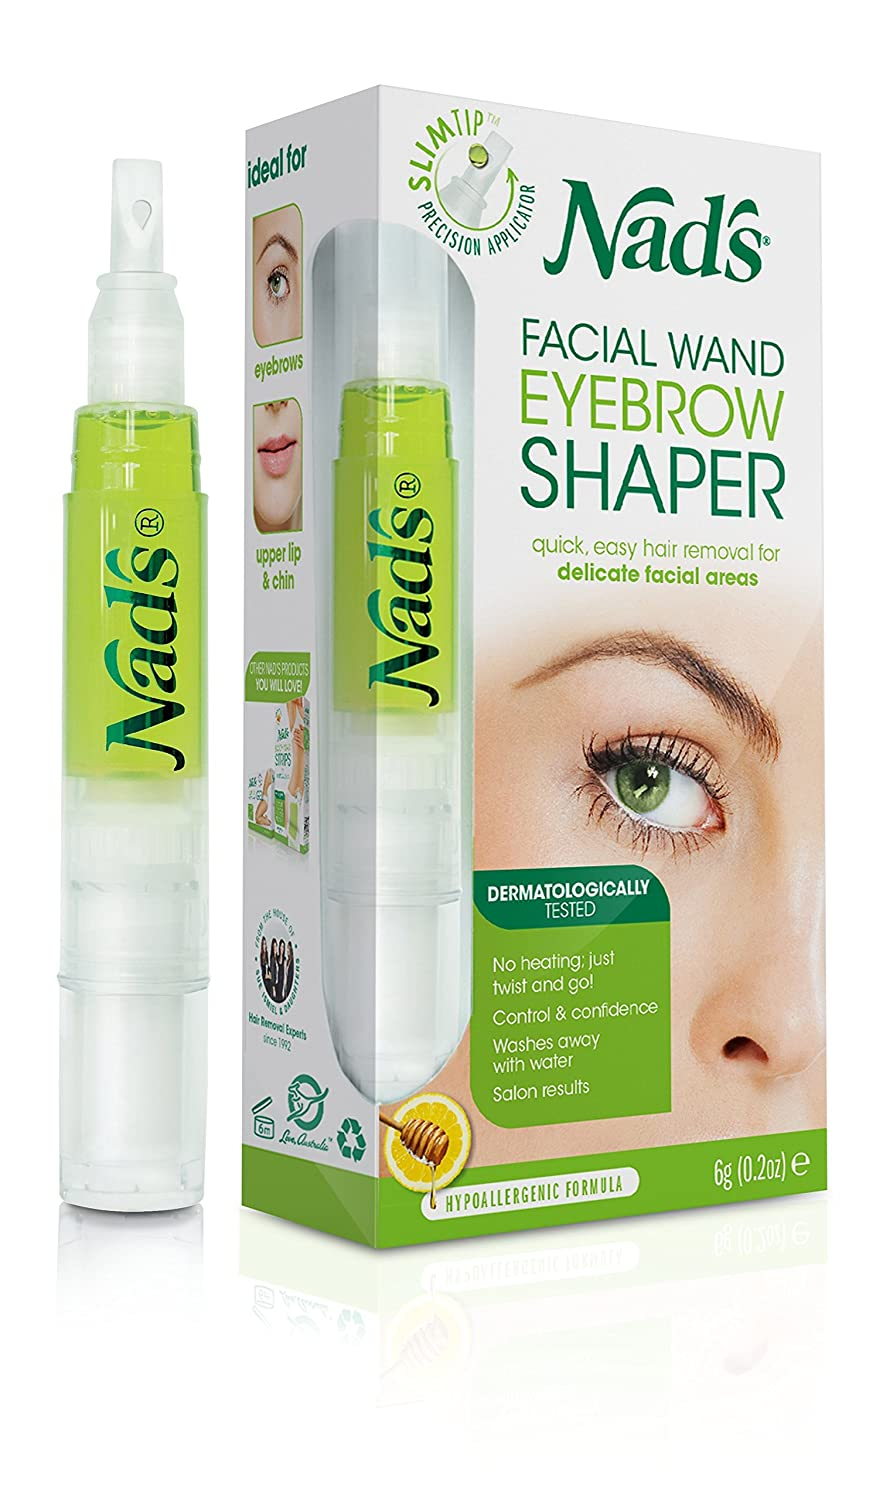 Nad's Eyebrow Shaper, Facial Wand Nad' s Eyebrow Shaper Lifesource Group US Inc. 677